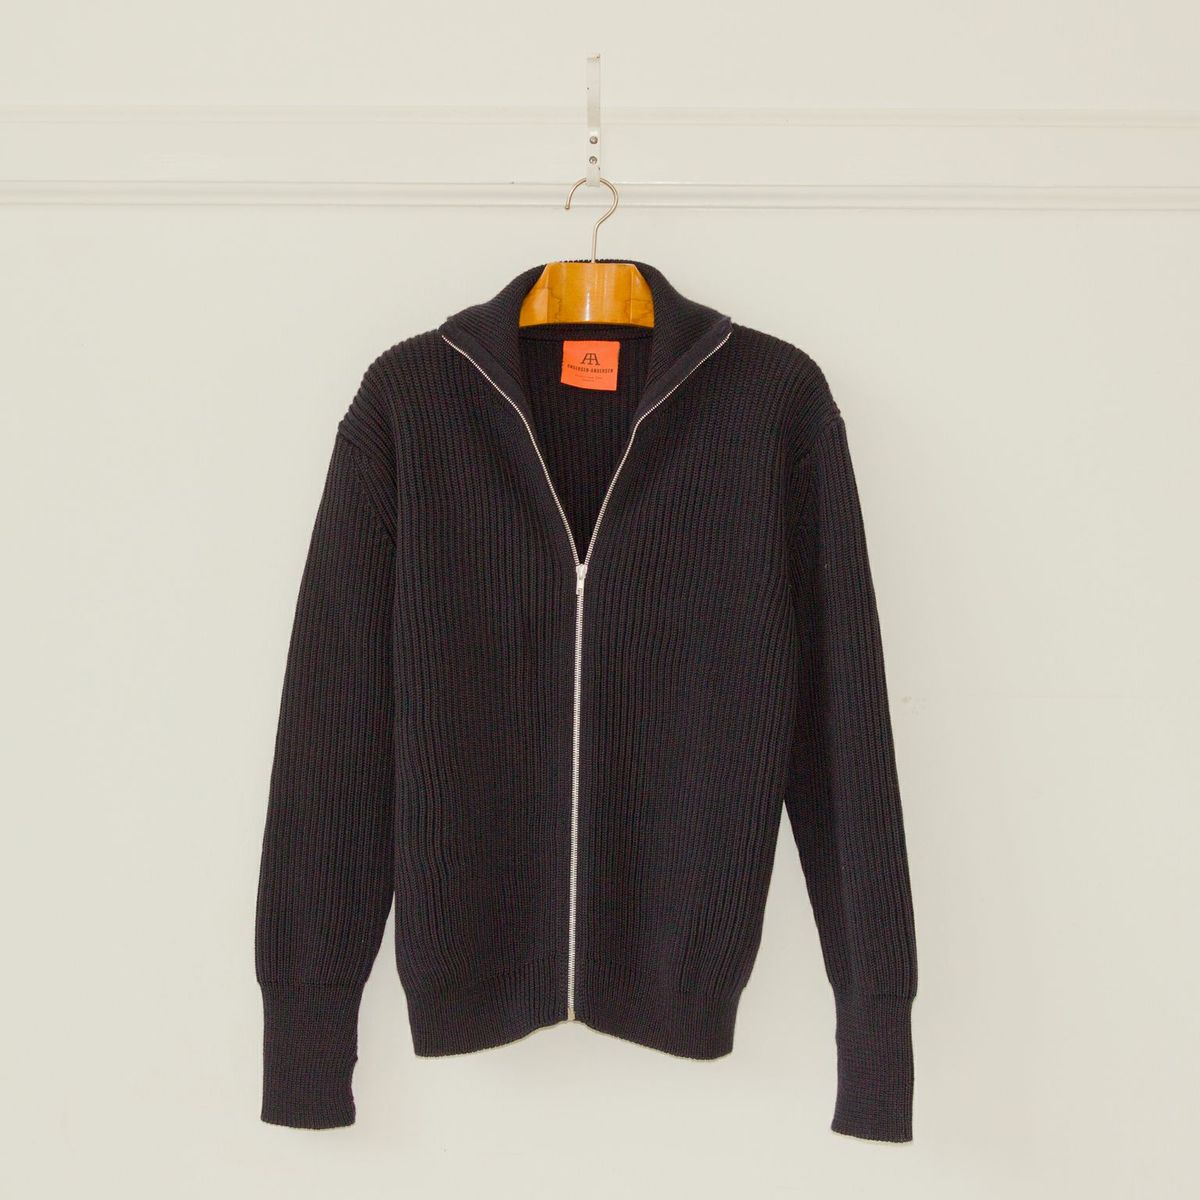 Navy Full Zip - blå kofta med dragkedja